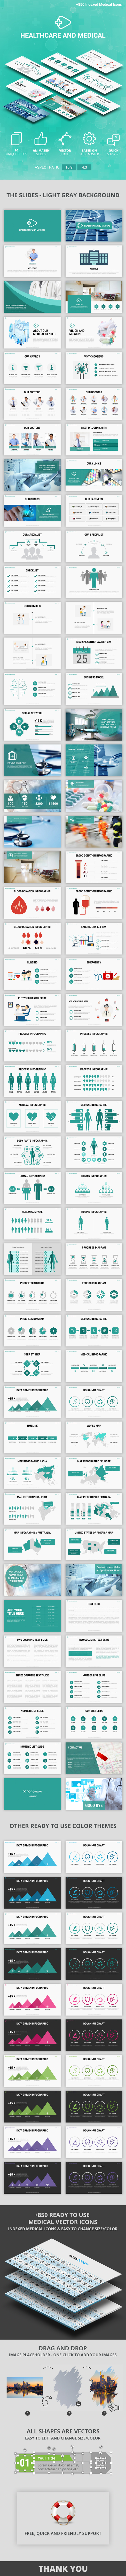 Healthcare and Medical - Keynote Presentation Template - Business Keynote Templates